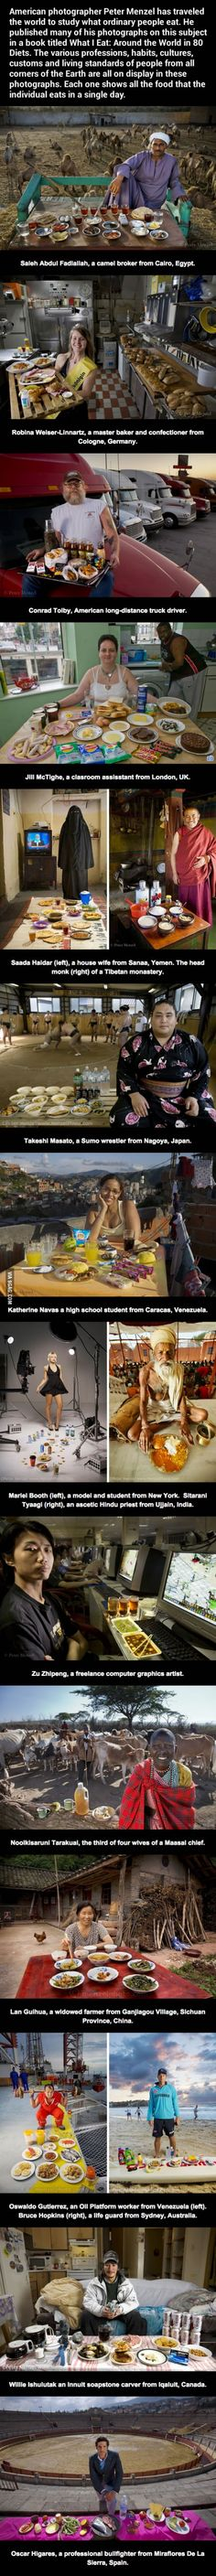 What ordinary people eat around the world